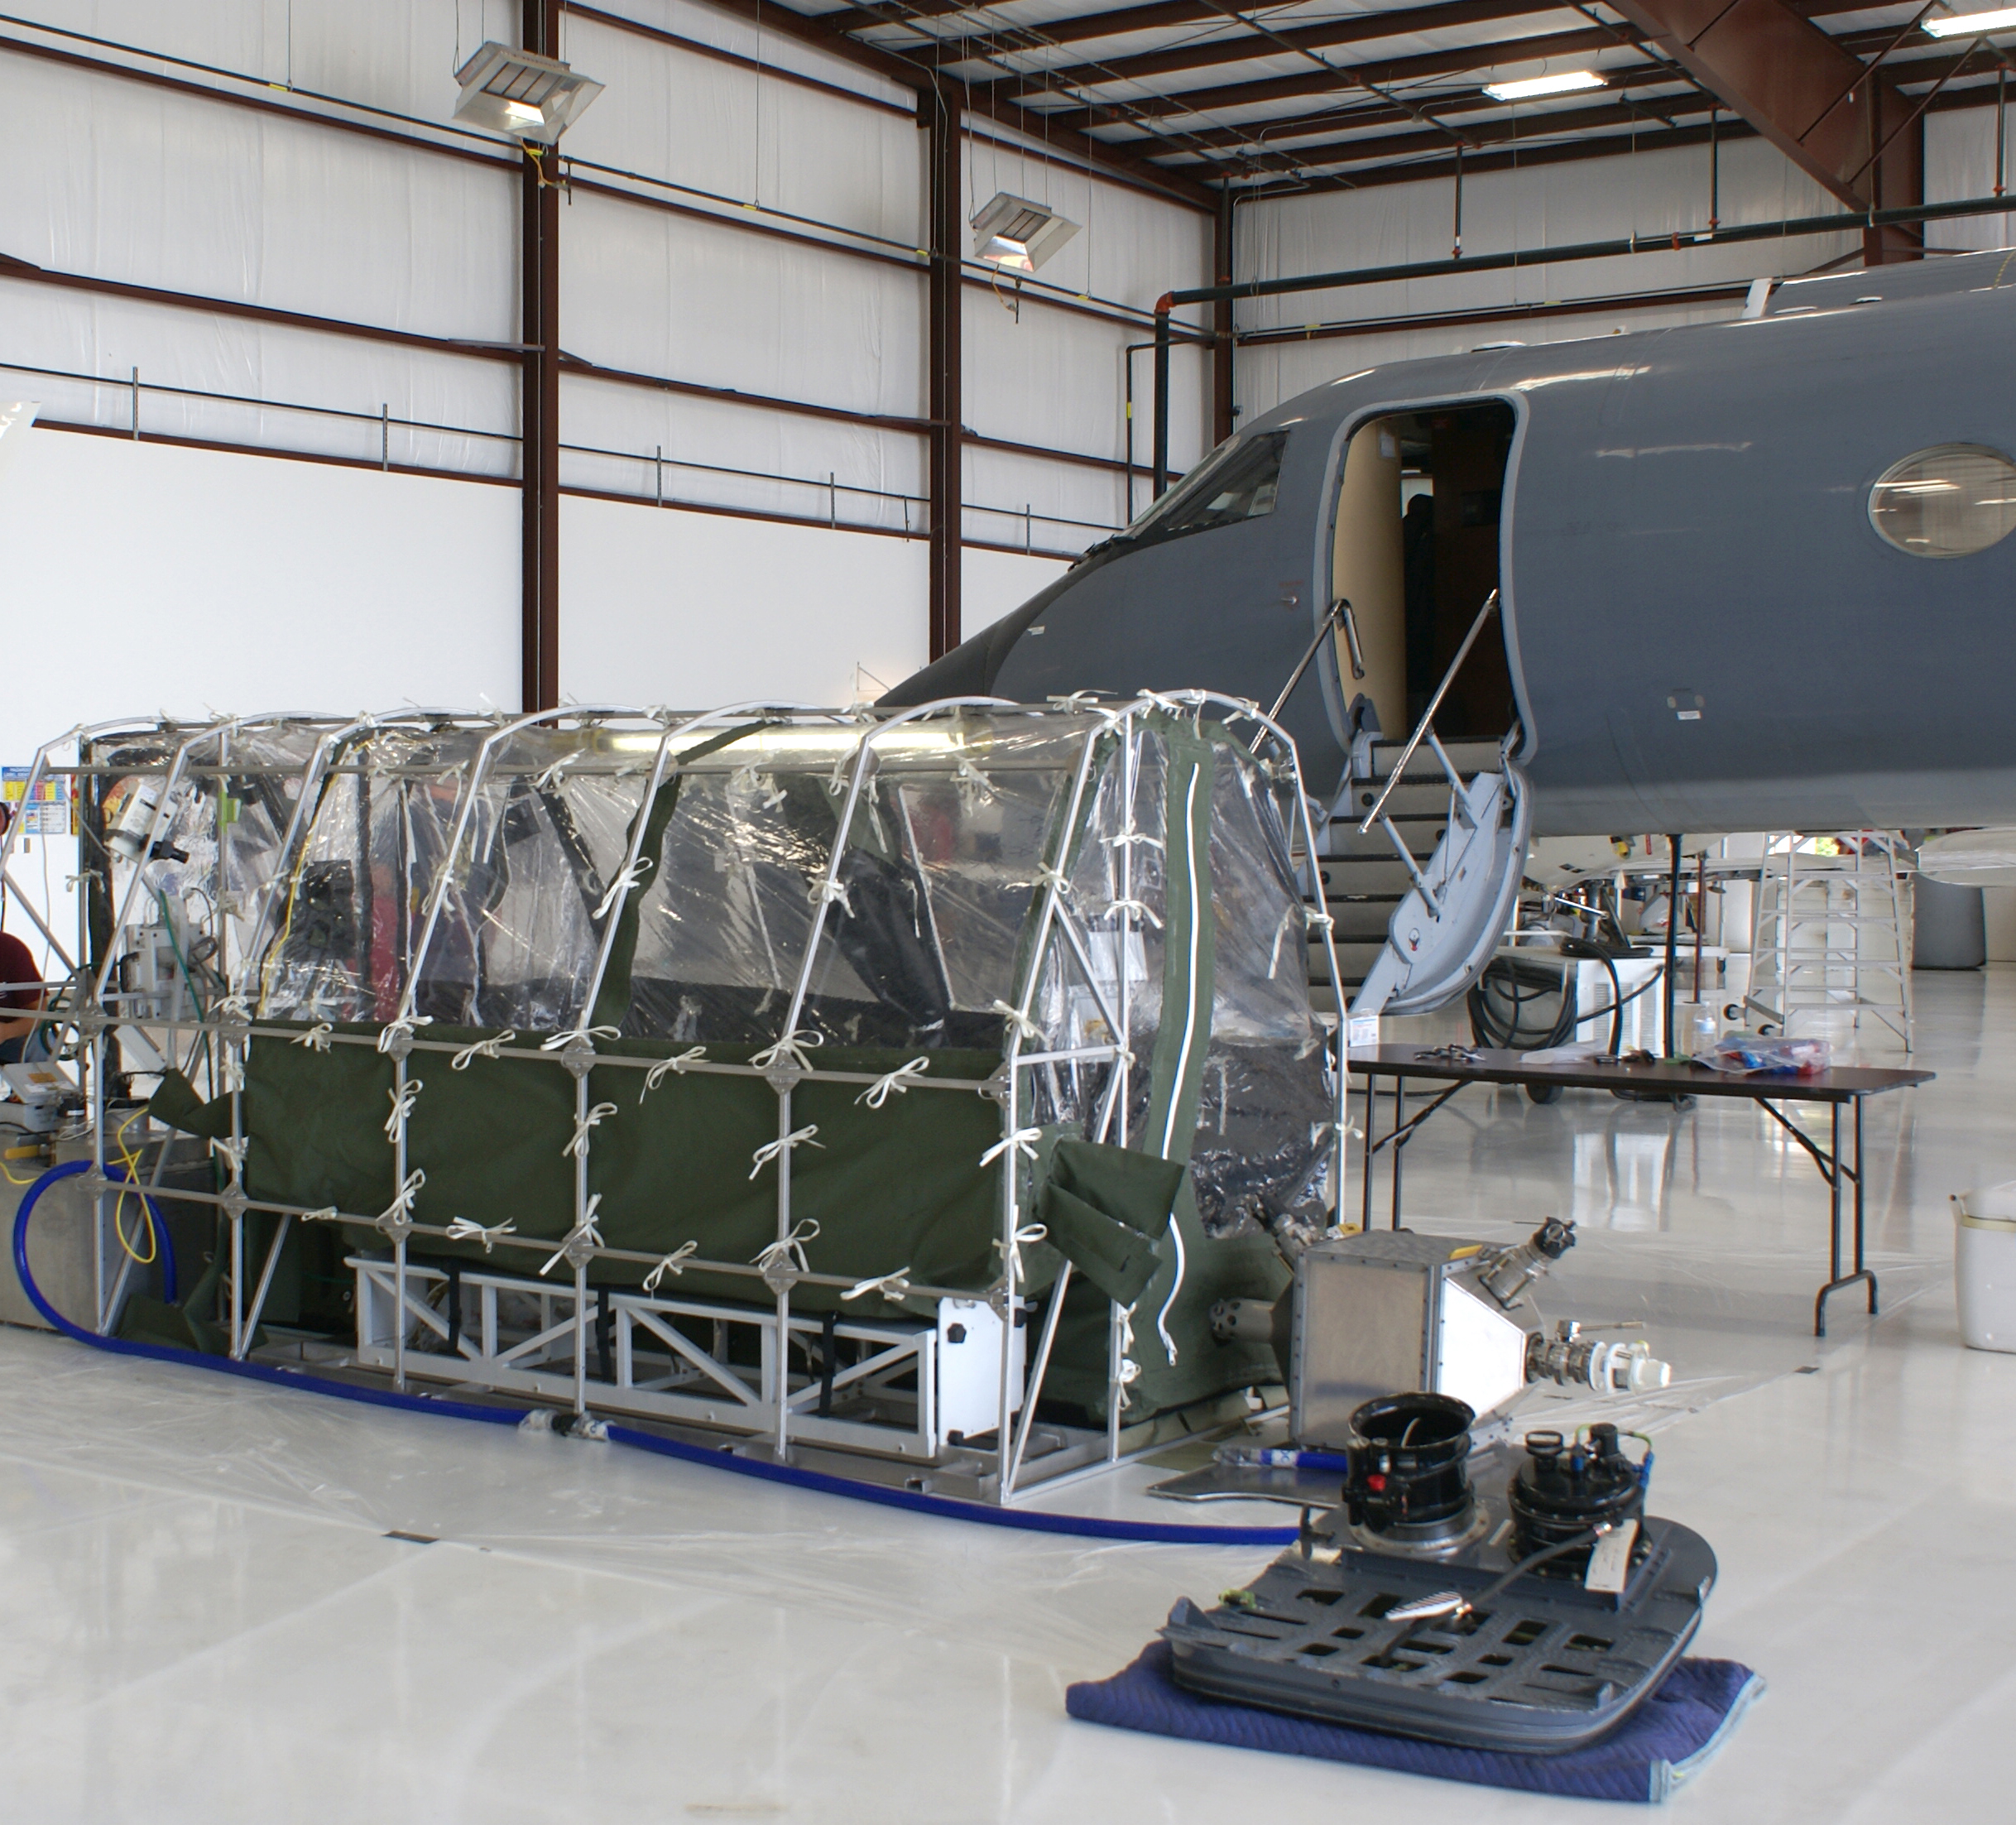 This is an example of the tent Ebola patients will be placed in to fly to the U.S.